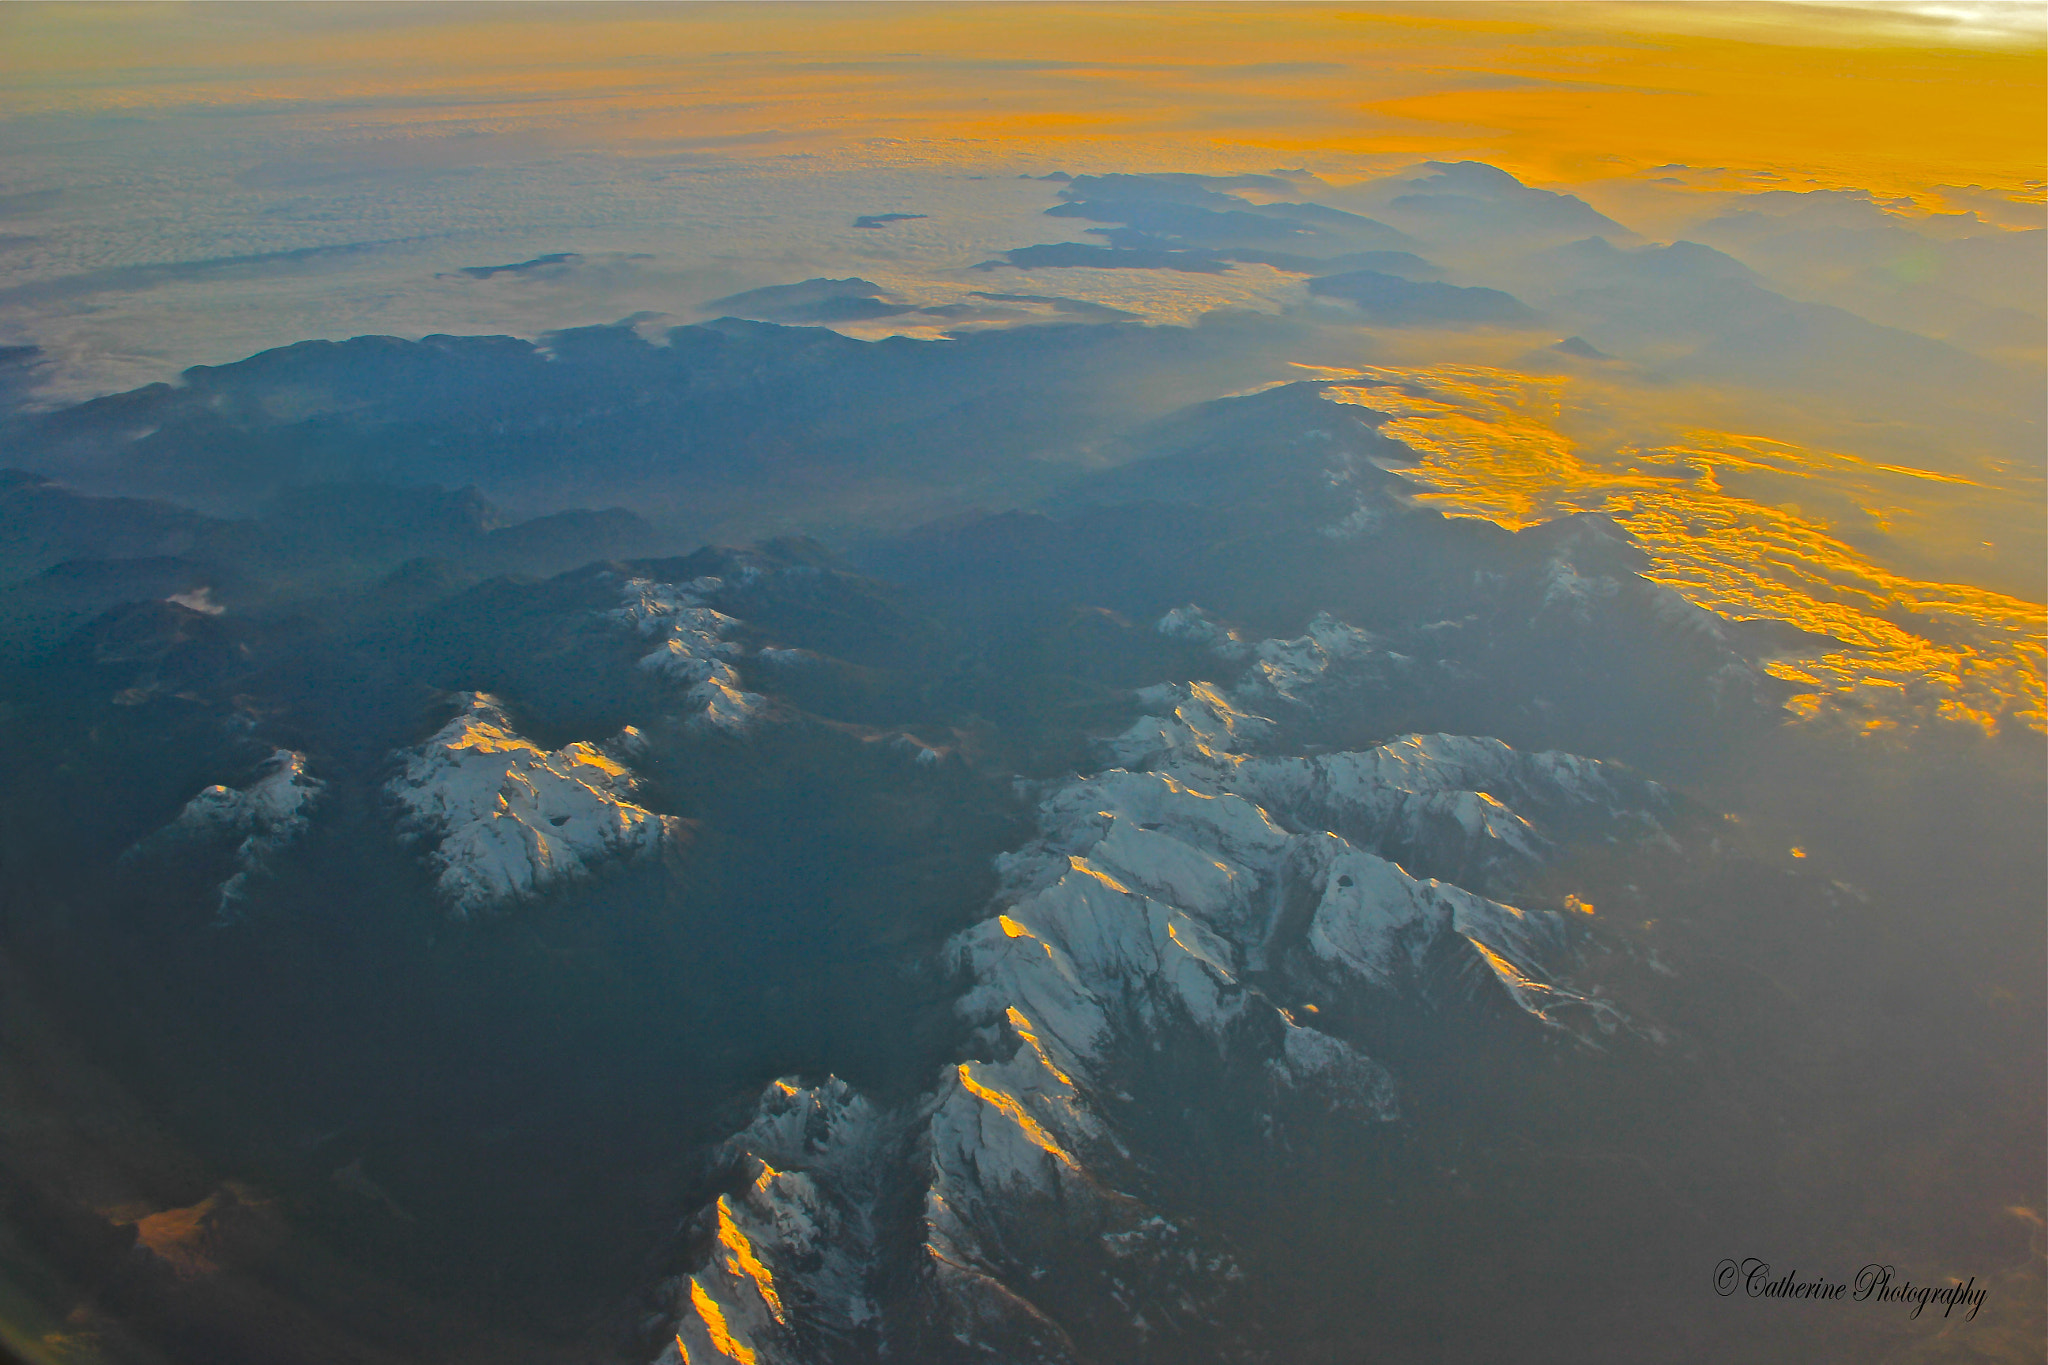 Photograph Golden Alps by Poh Huay Suen on 500px